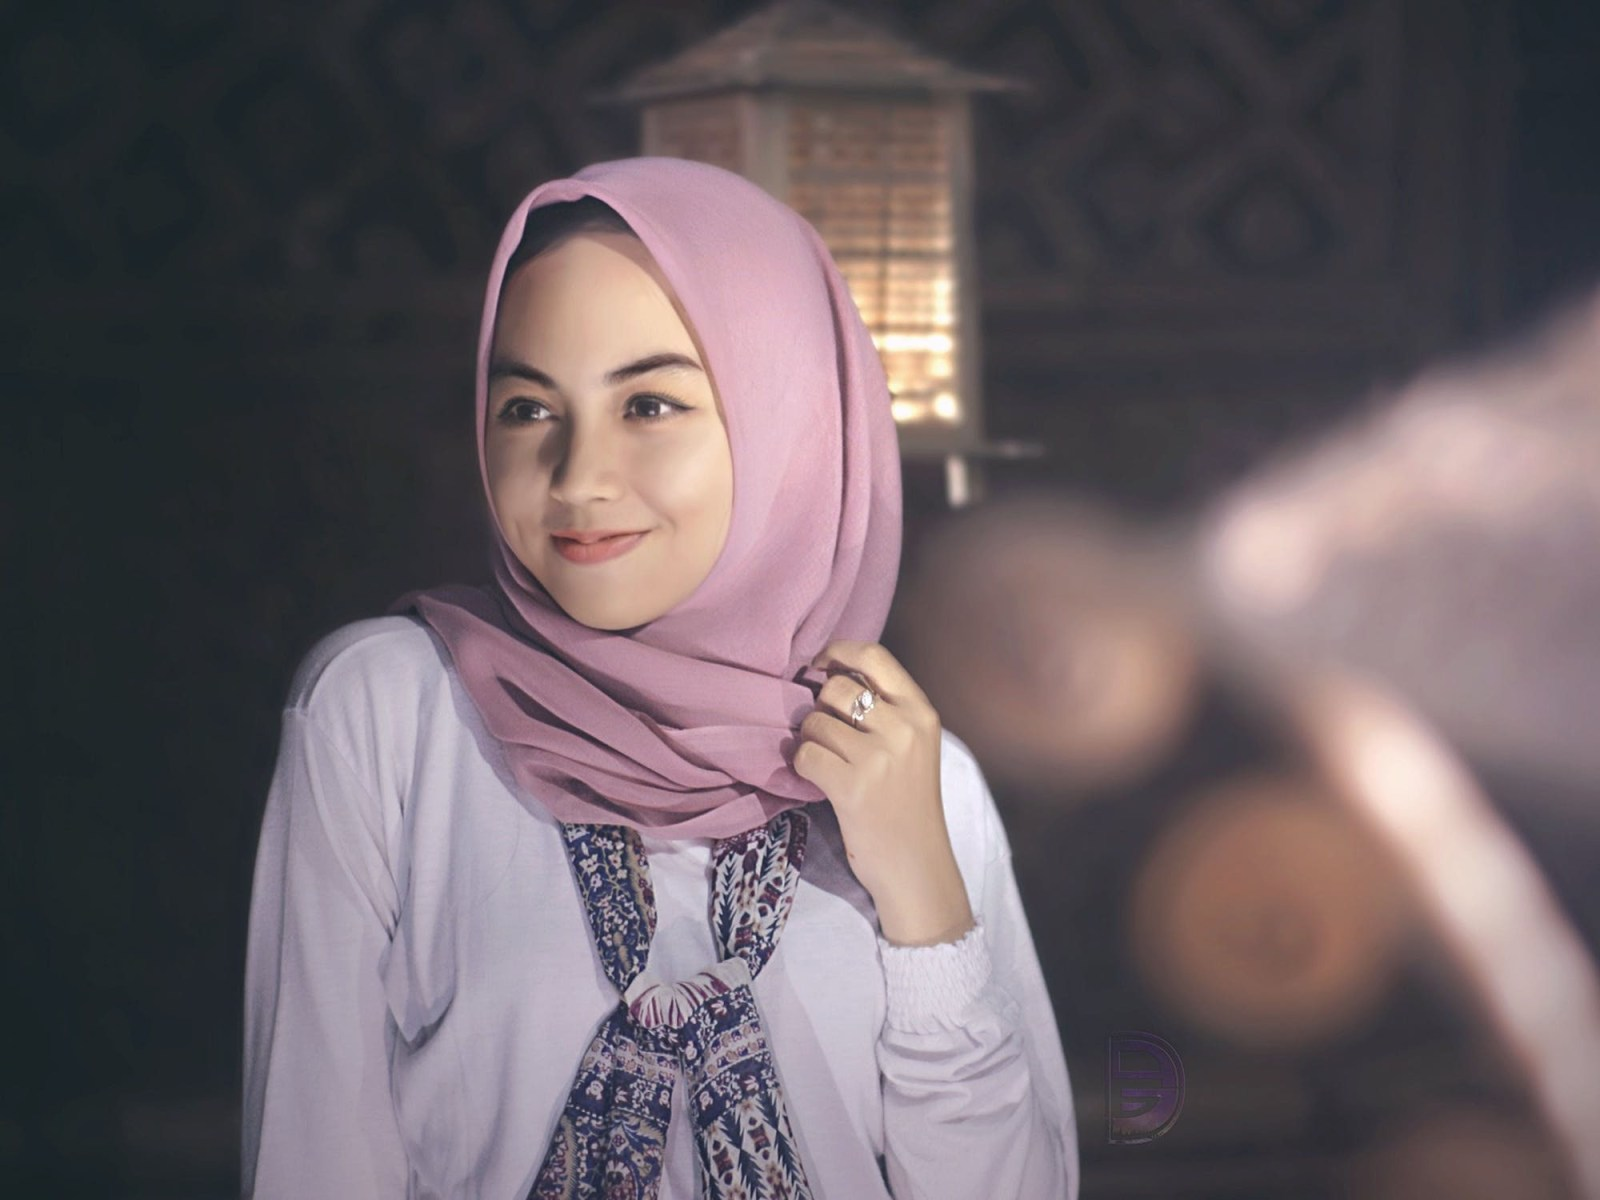 There are so many options for hijab styles to wear, and we can help you pick out the best one for you based on your face shape!